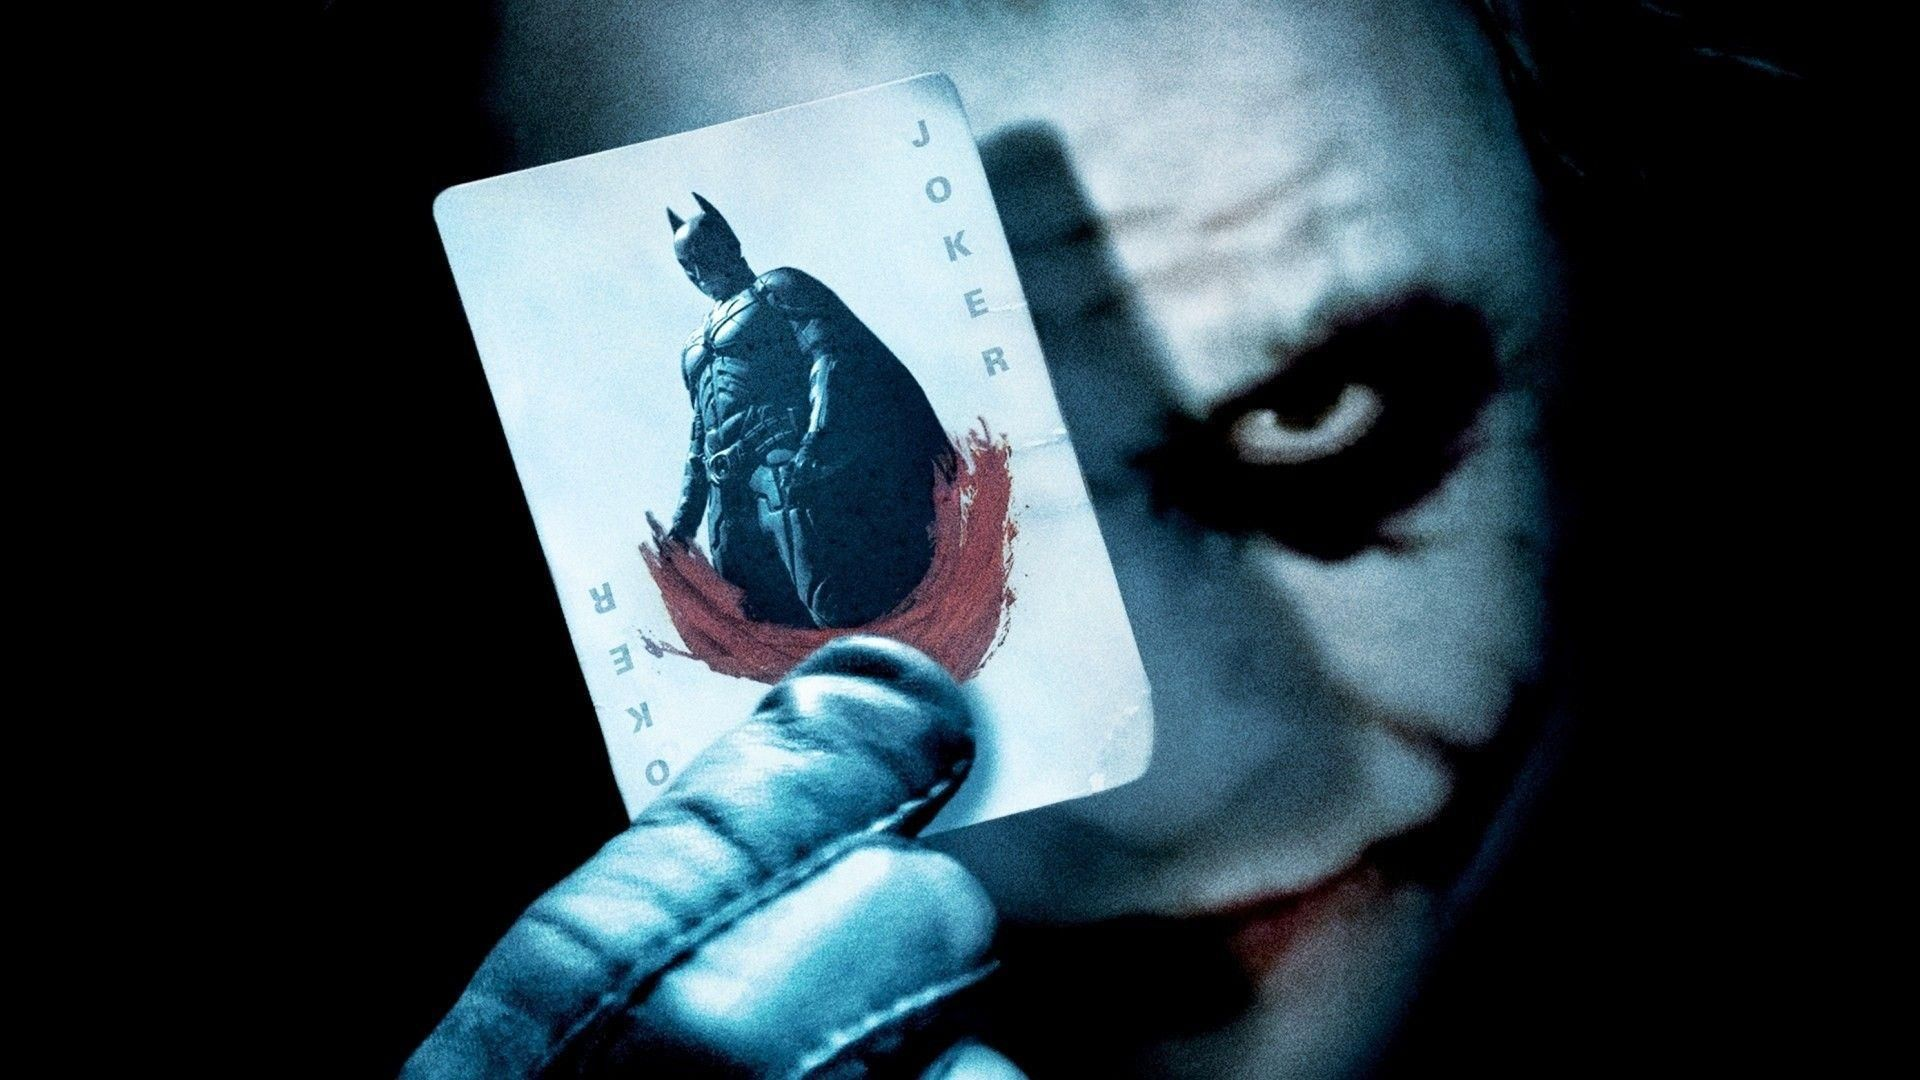 Batman Joker Card Wallpapers Hd Wallpapers Quotes Joker